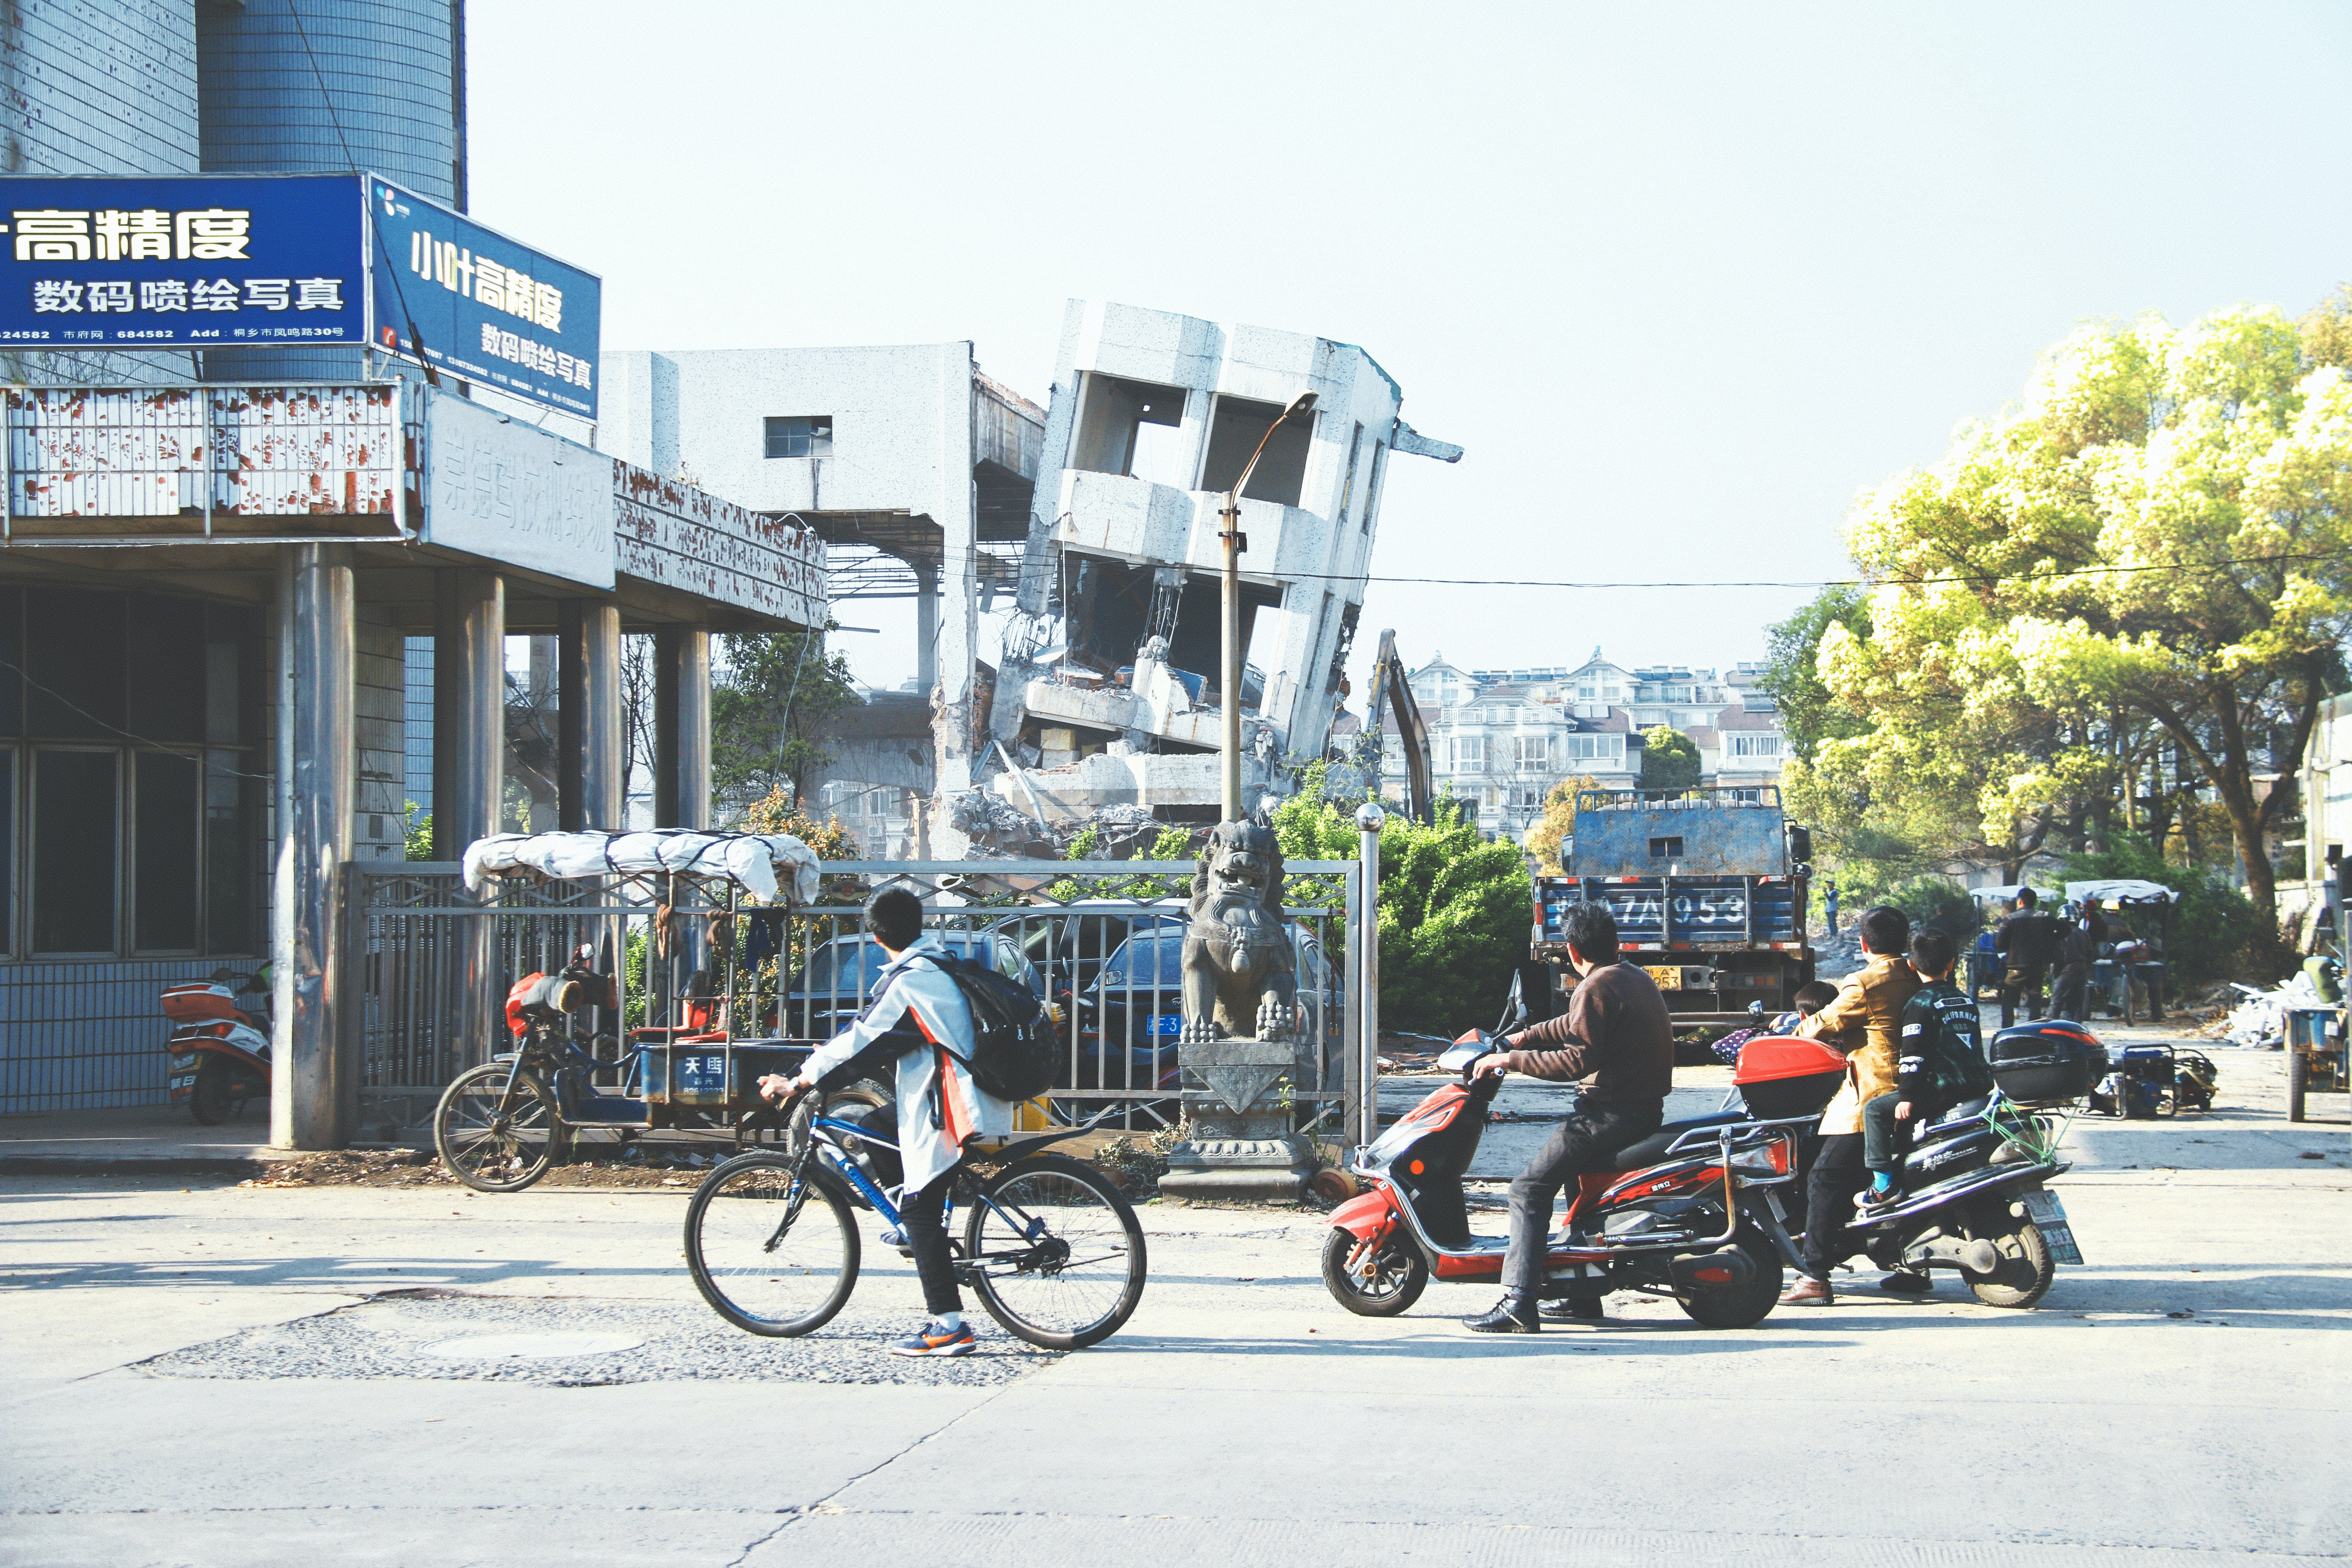 three men riding bicycle and motor scooters near building at daytime